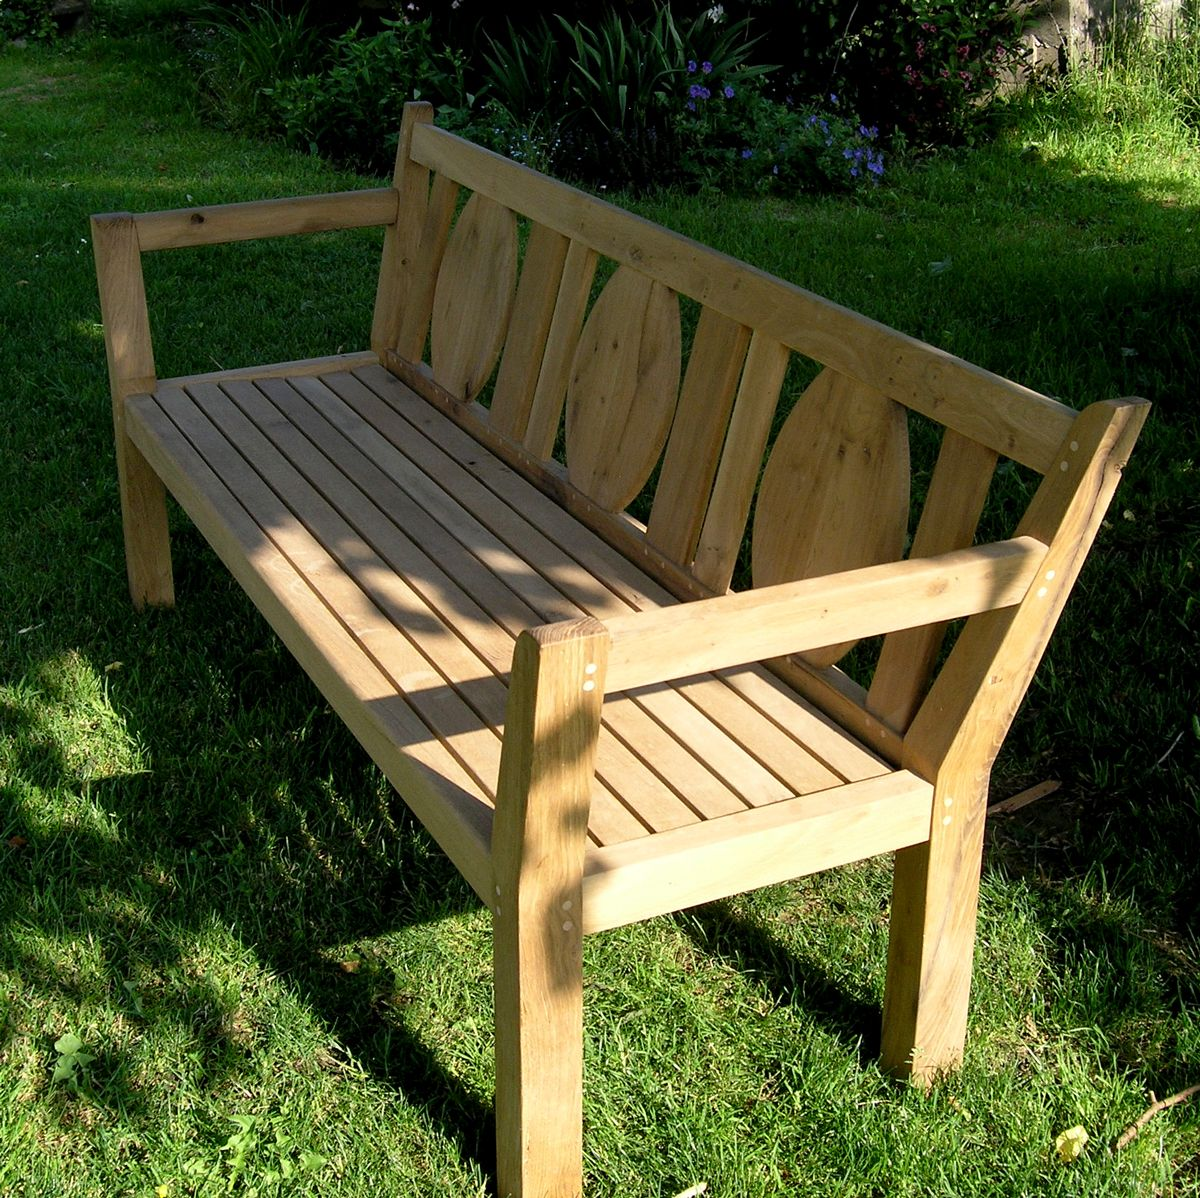 Strange Bespoke Garden Bench In 2019 Makers Chairs Benches Beatyapartments Chair Design Images Beatyapartmentscom